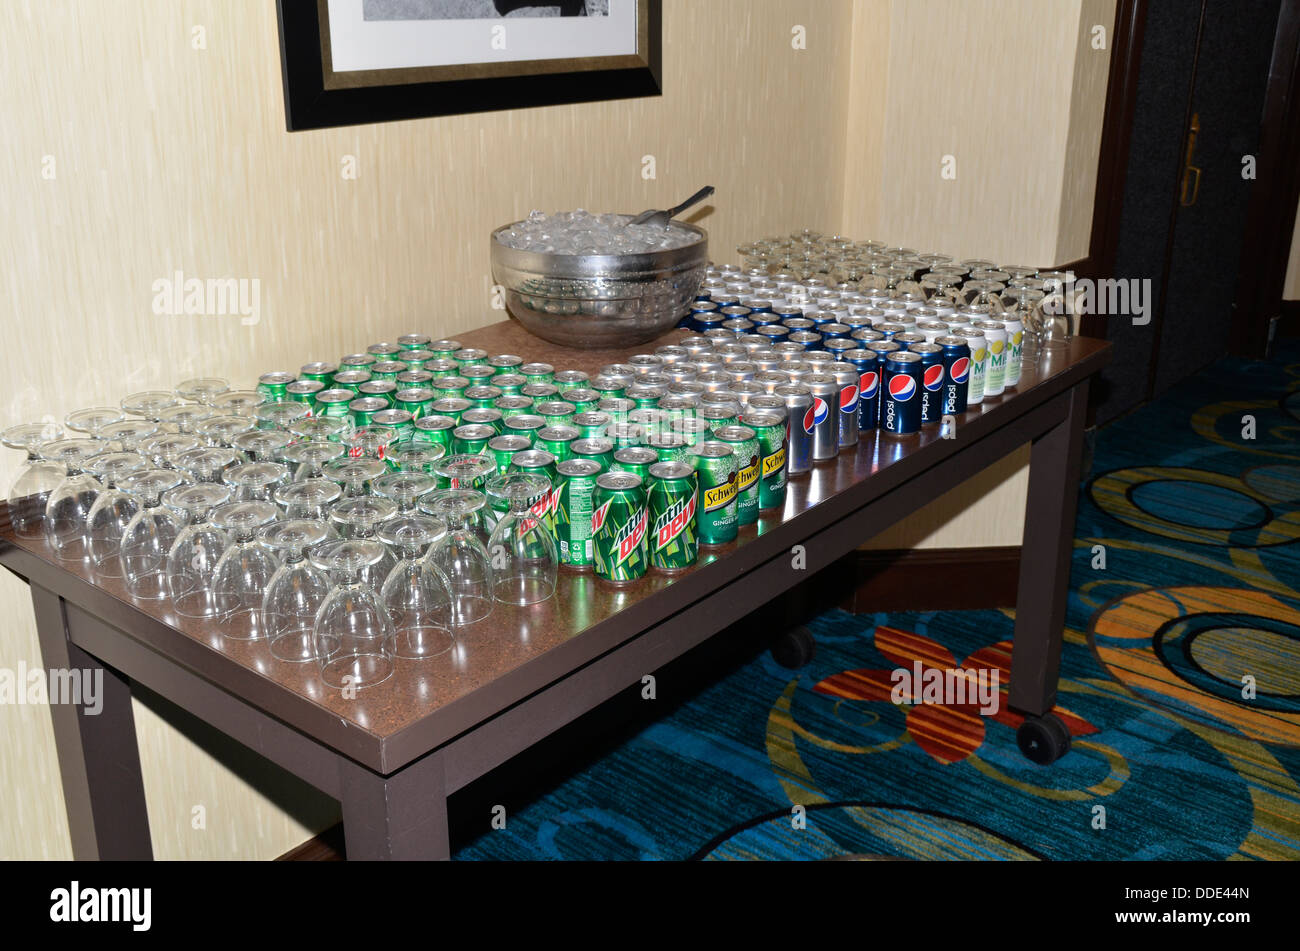 sodas set up for a special event at a hotel in Greenbelt, Maryland - Stock Image